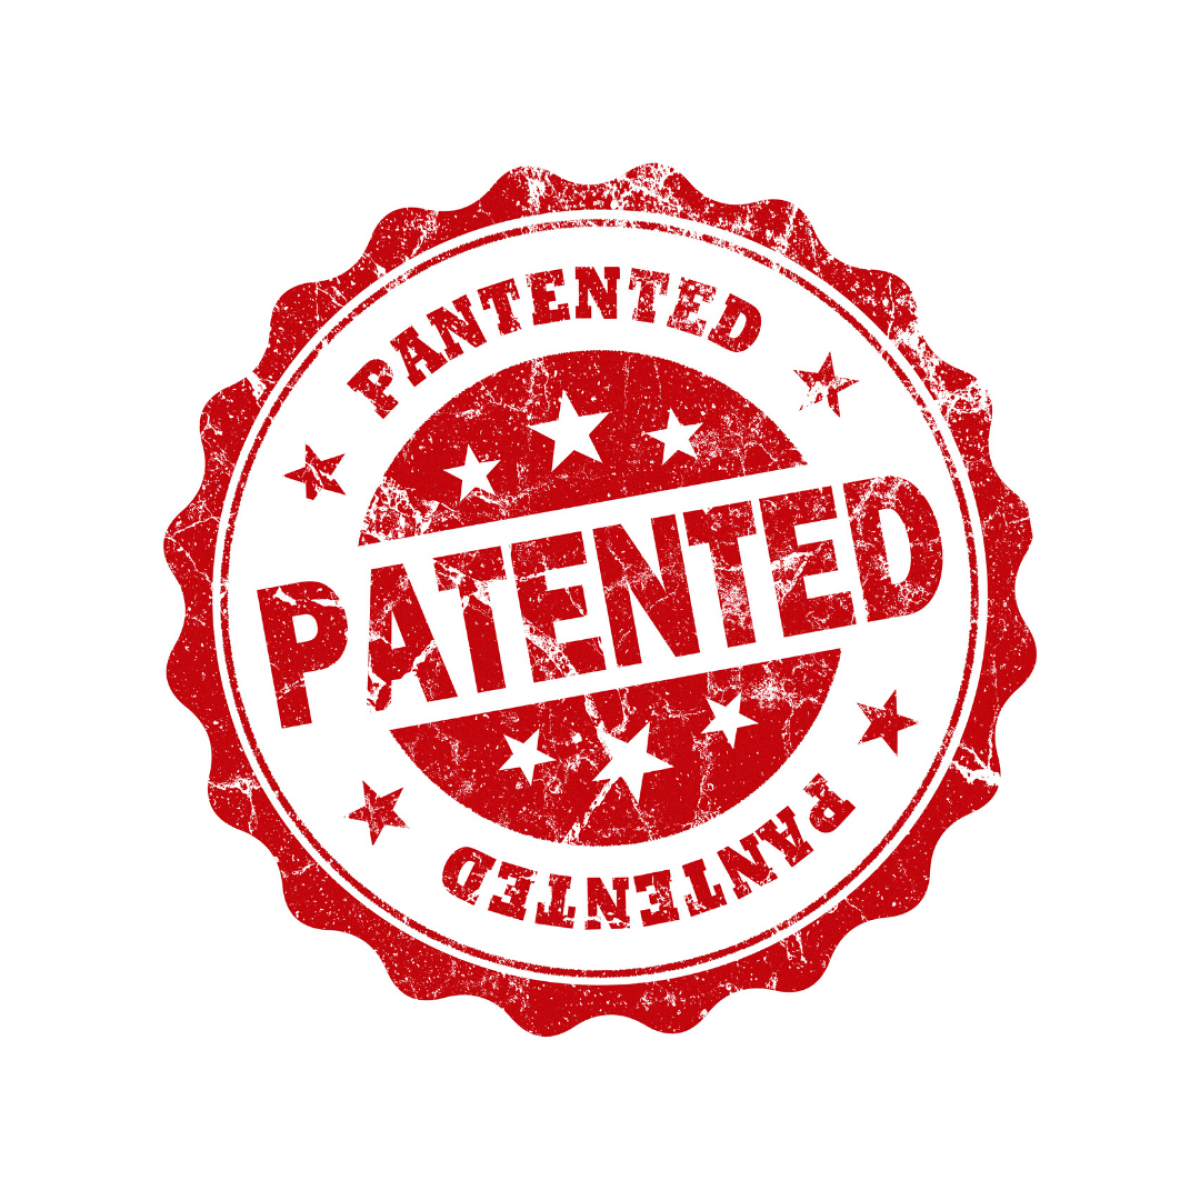 US Patent & Trademark Office Waives Fees in Response to Coronavirus Outbreak